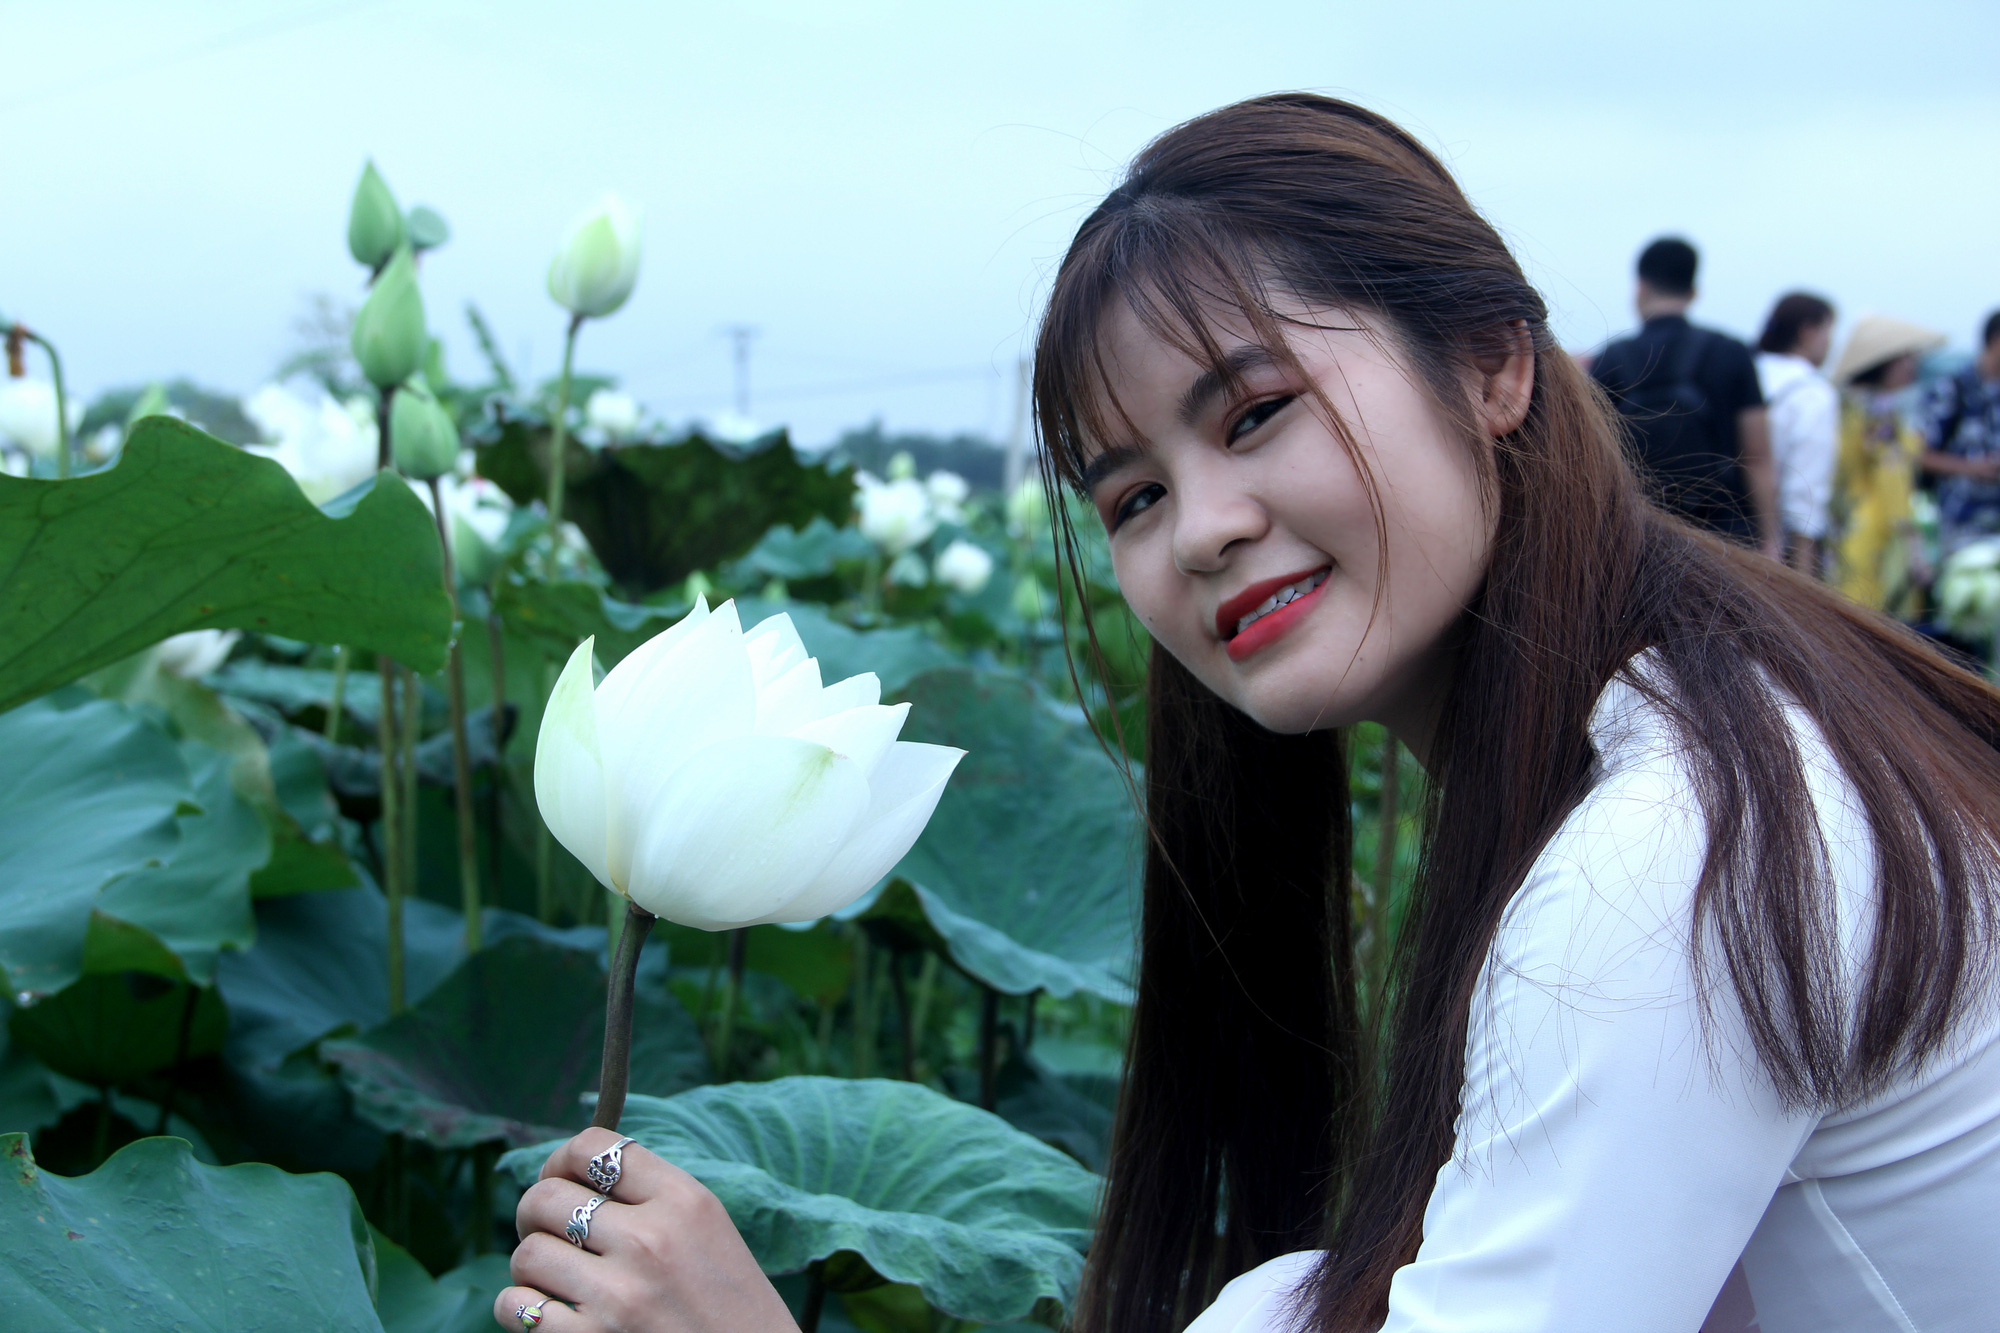 A woman in the traditional Vietnamese 'ao dai' poses with white lotus flowers at a pond in Tam Hung Commune, Thanh Oai District, Hanoi, Vietnam in this photo taken in May 2020. Photo: Duong Lieu / Tuoi Tre